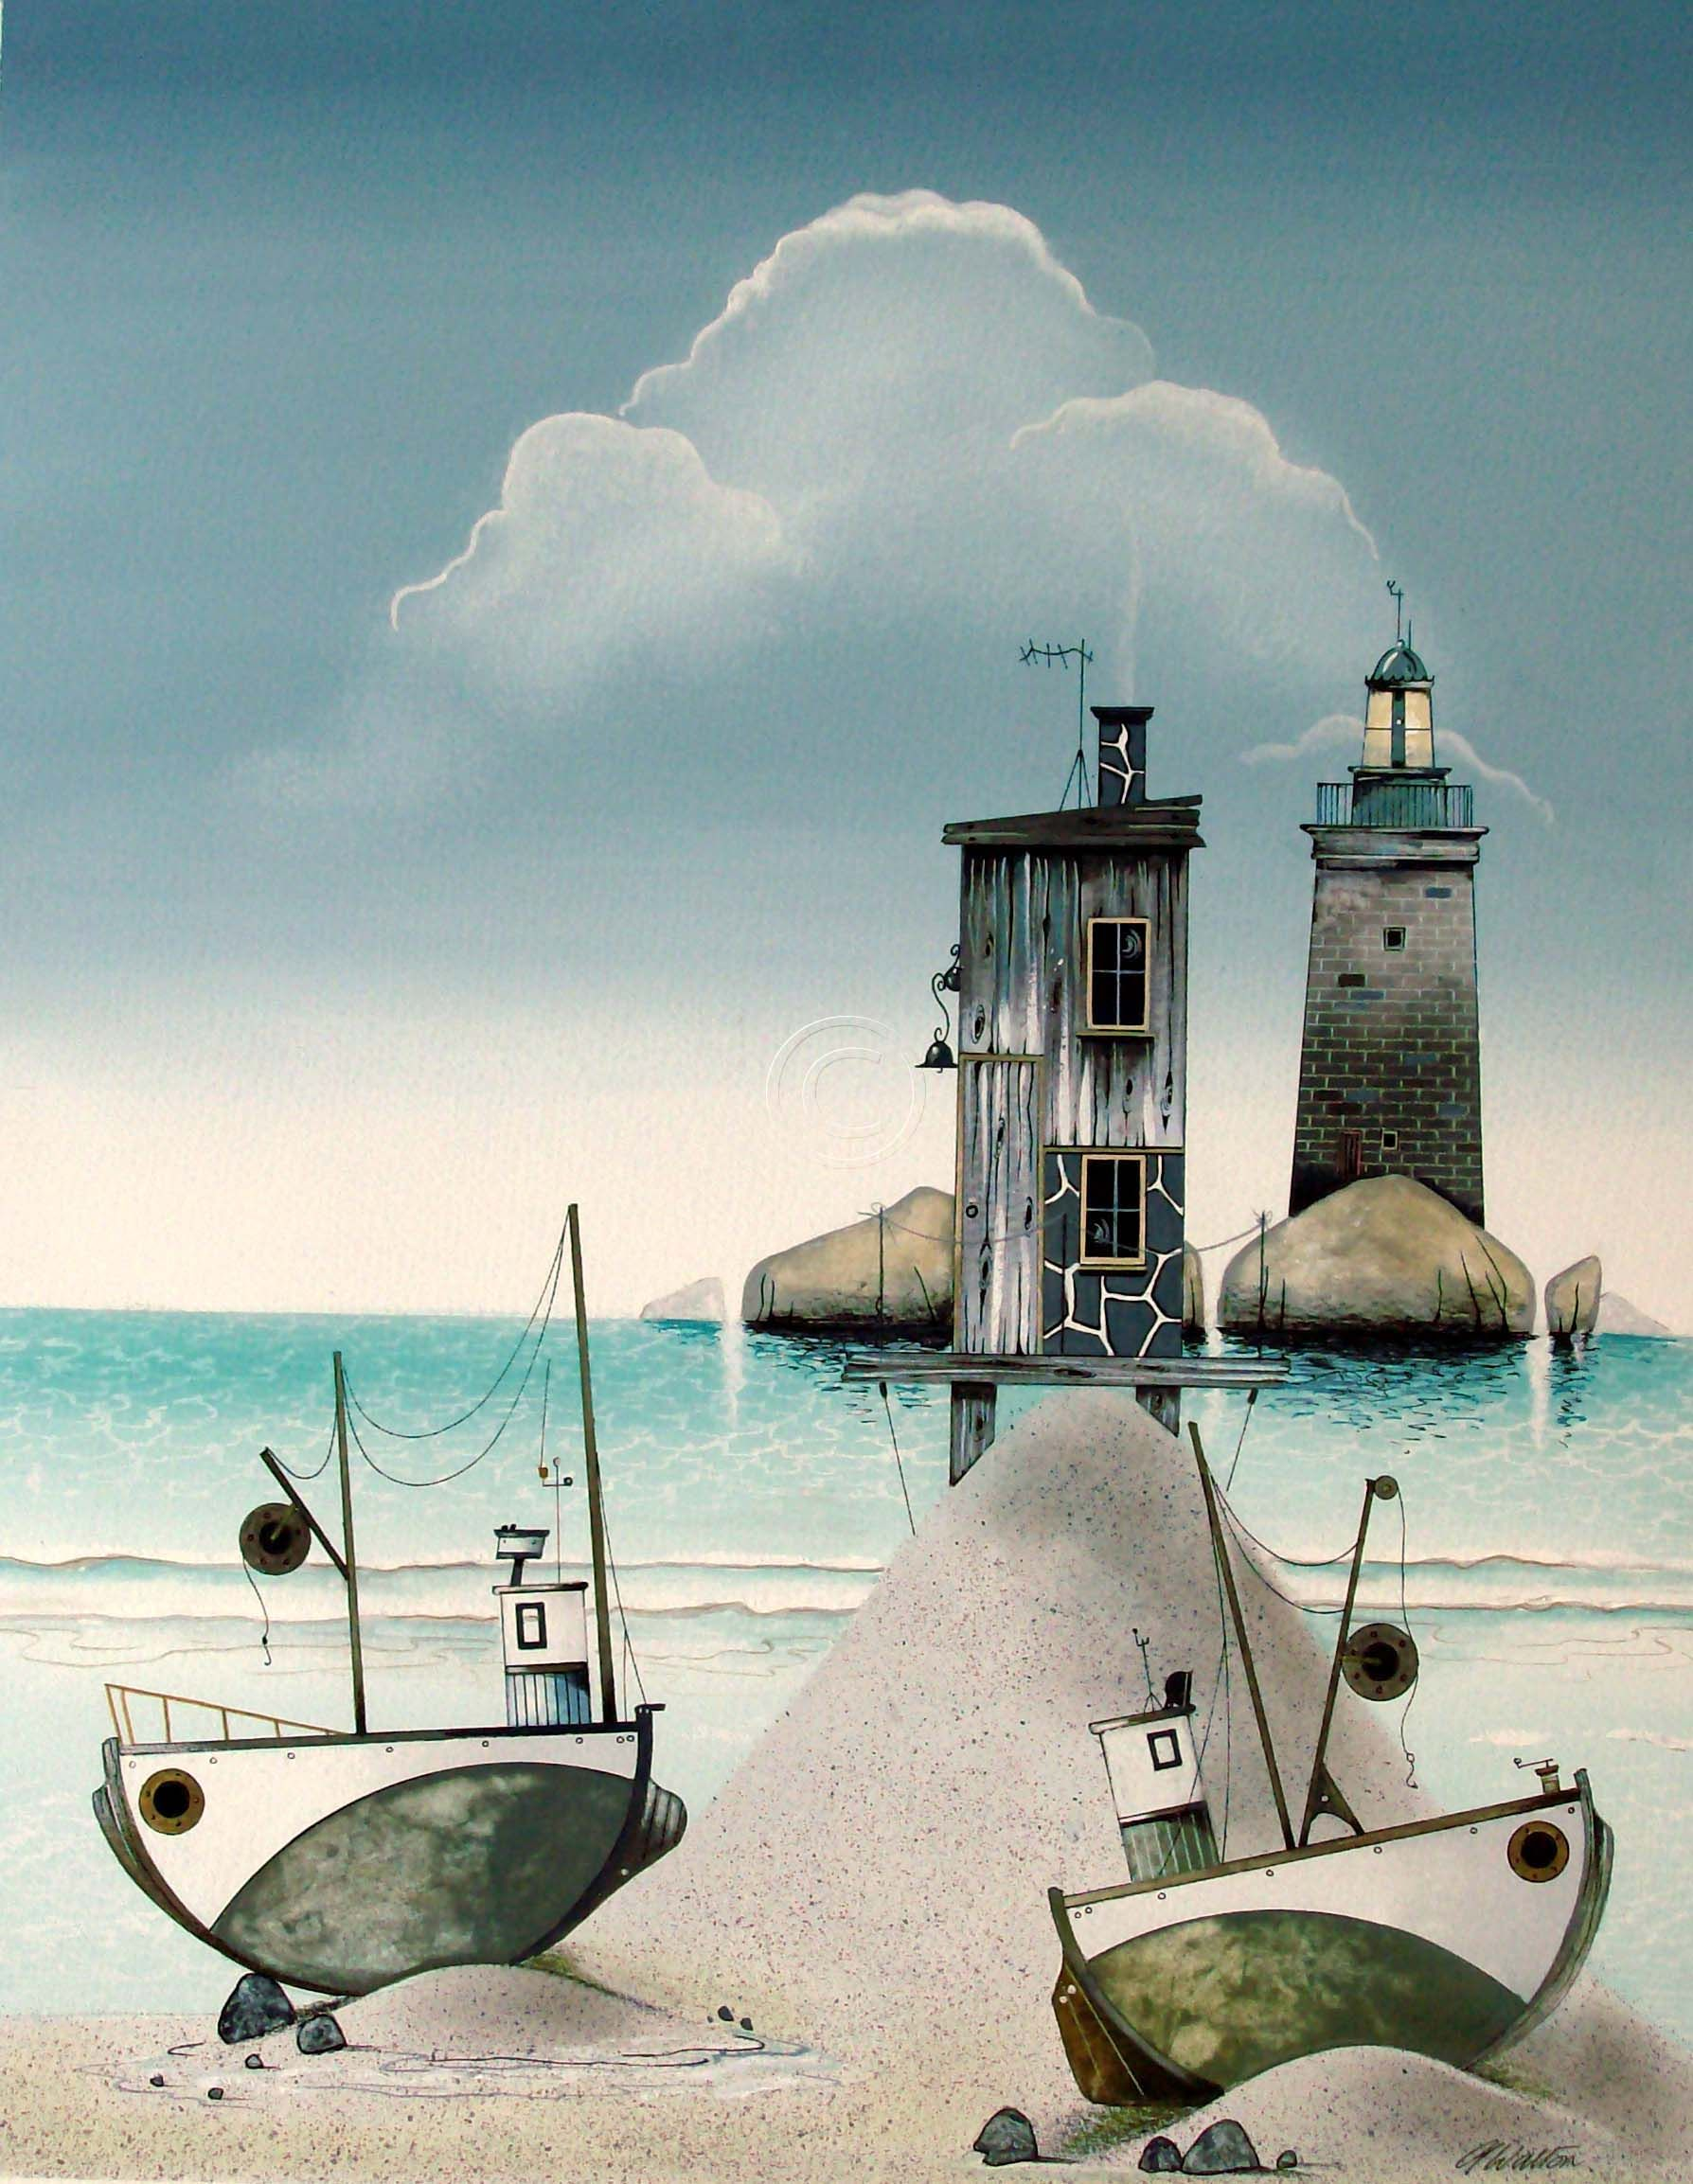 gary walton art. lighthouse out at sea with tug boats on a sandy